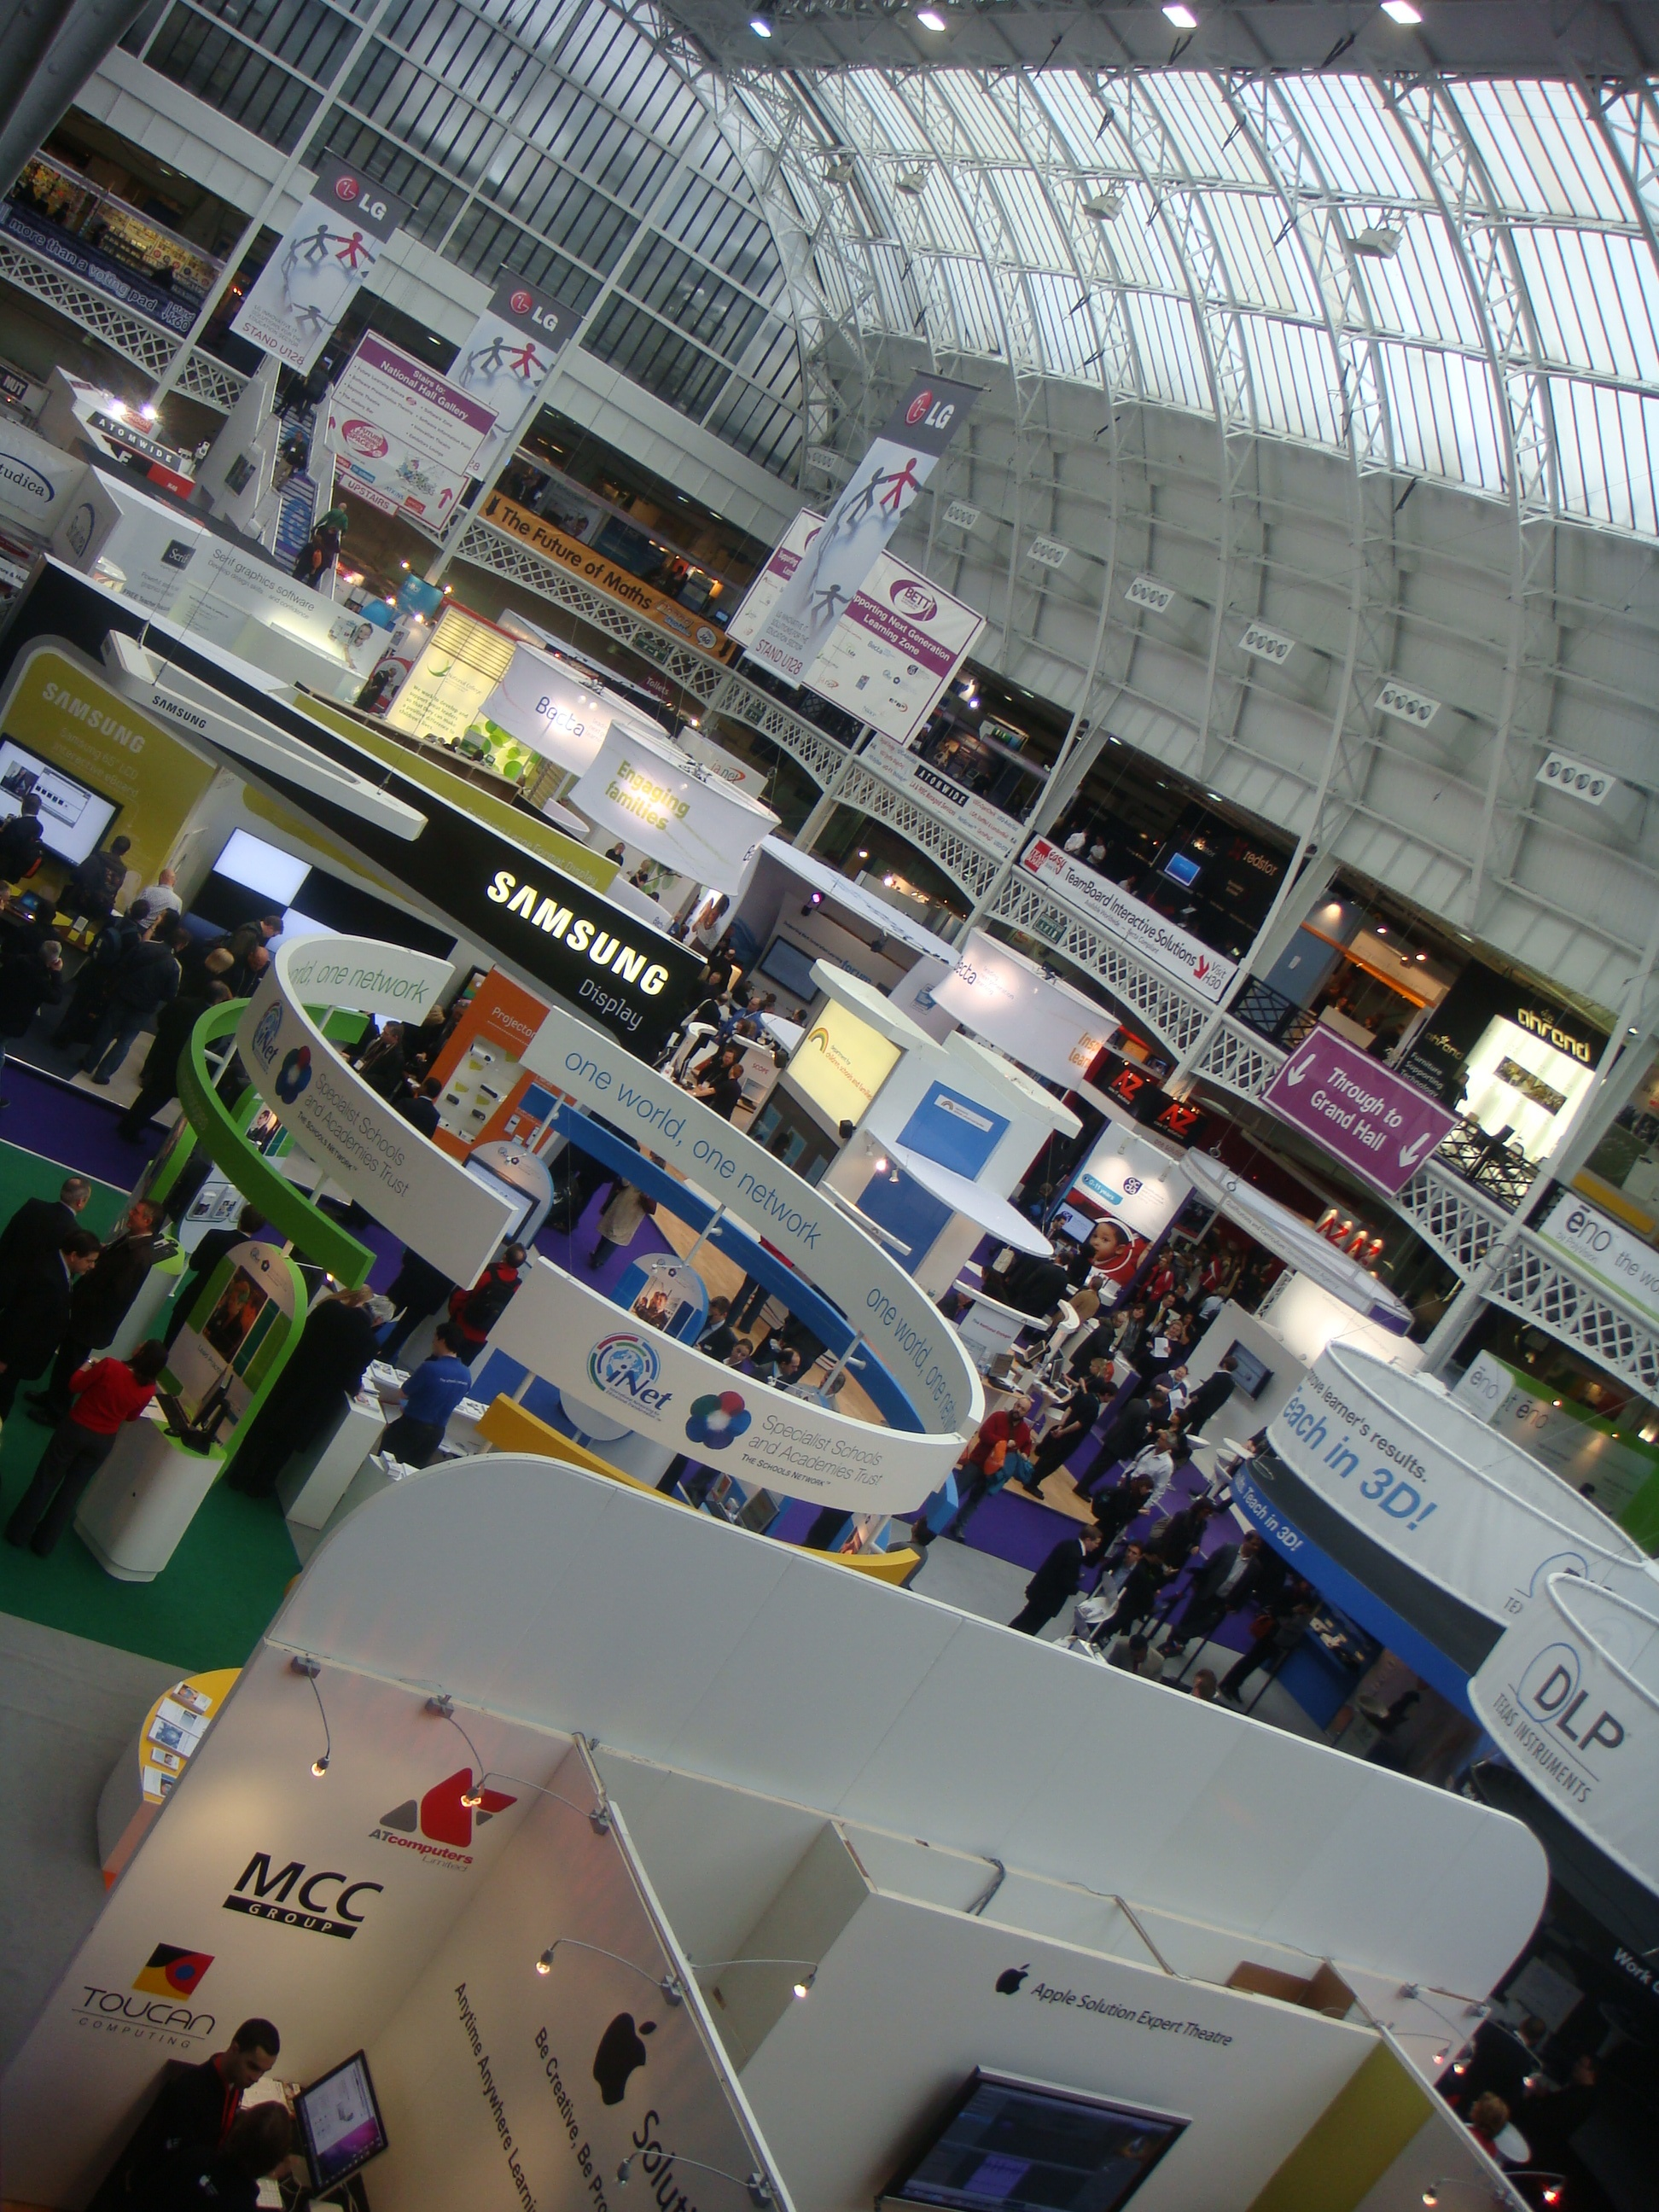 See you at BETT again in 2011